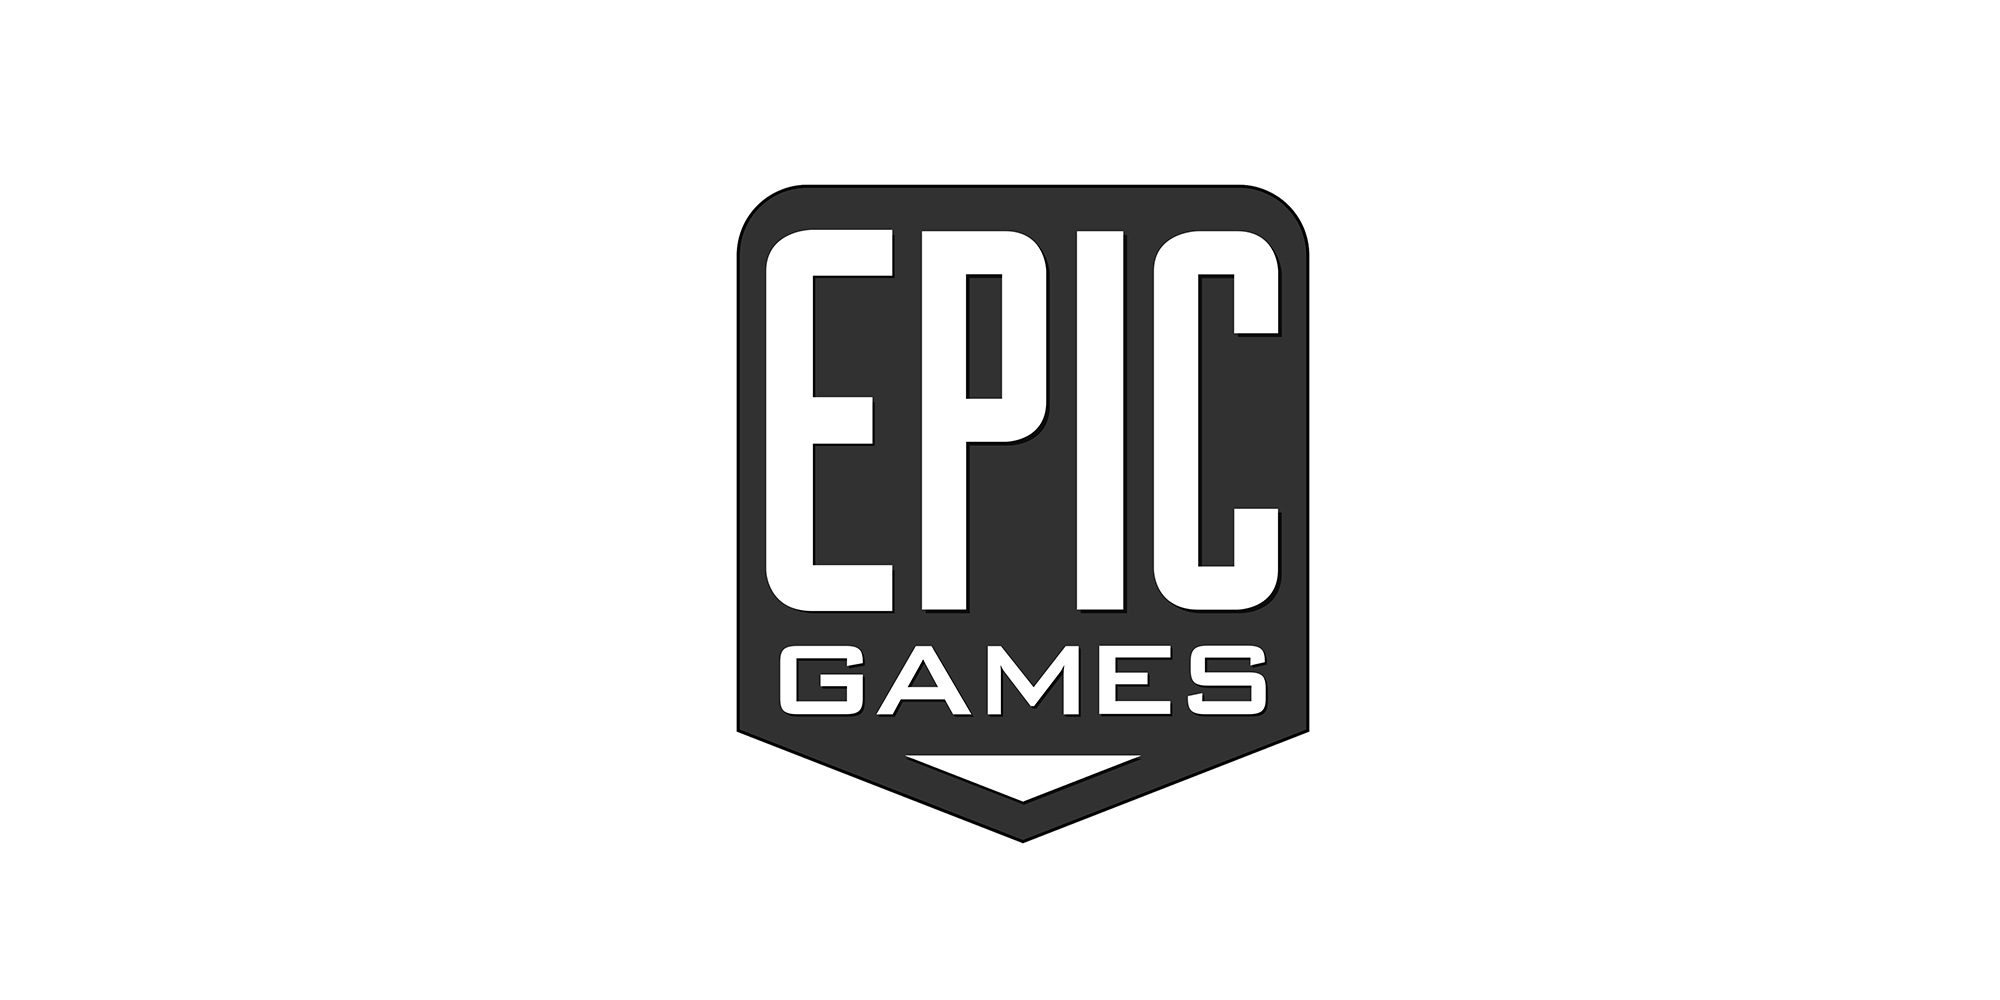 Ru Games Ventures Announce A Strategic Partnership With Epic Games For Unreal Engine Developers Mail Ru Group